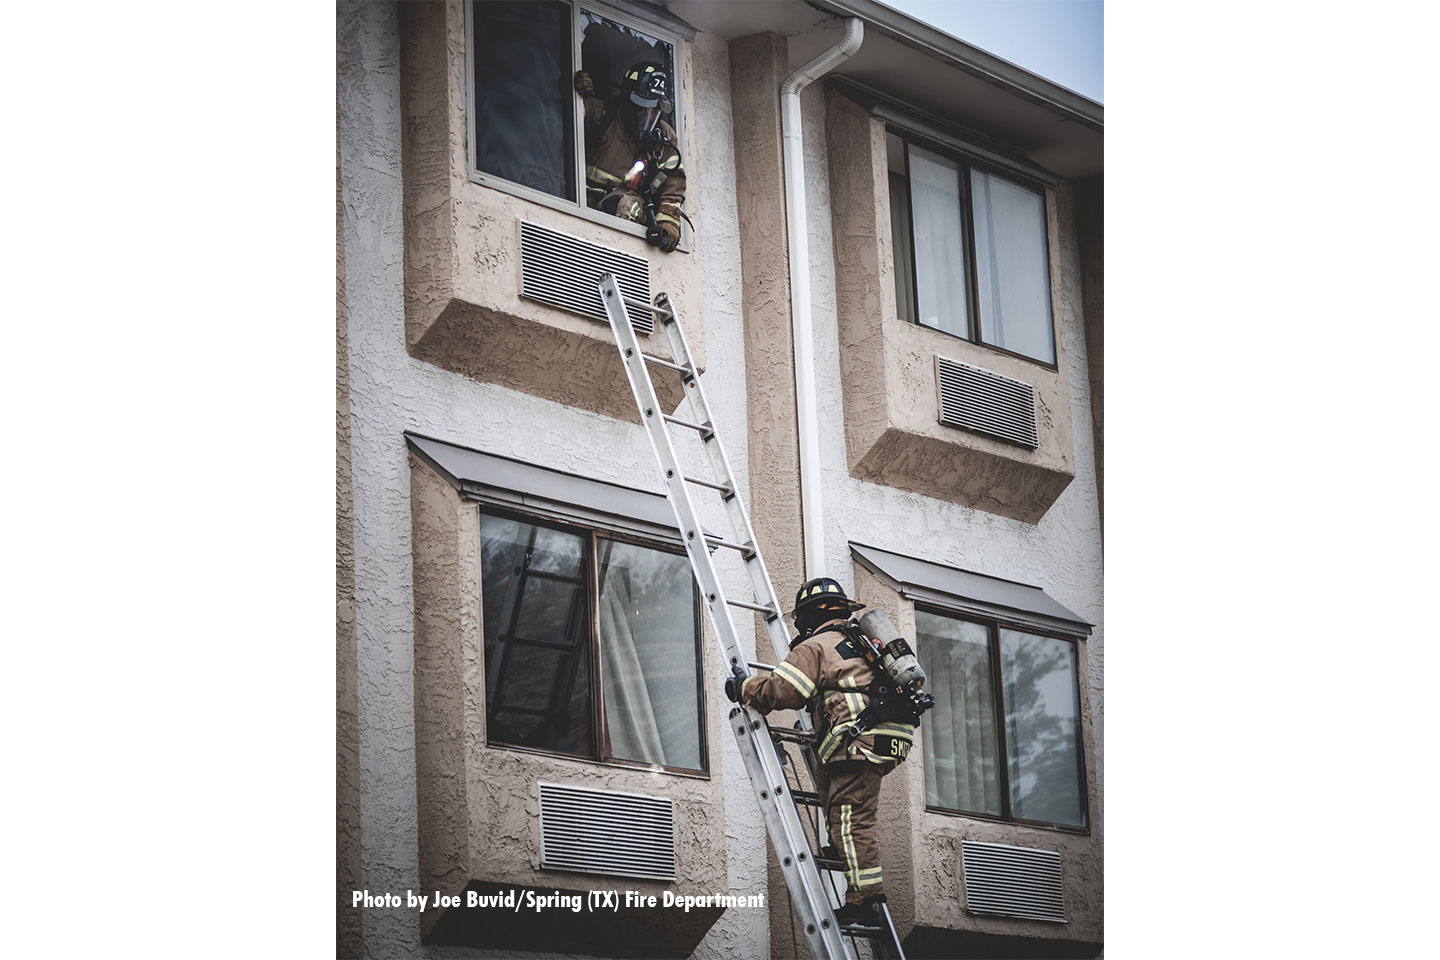 A firefighter on scene climbs a portable ladder.